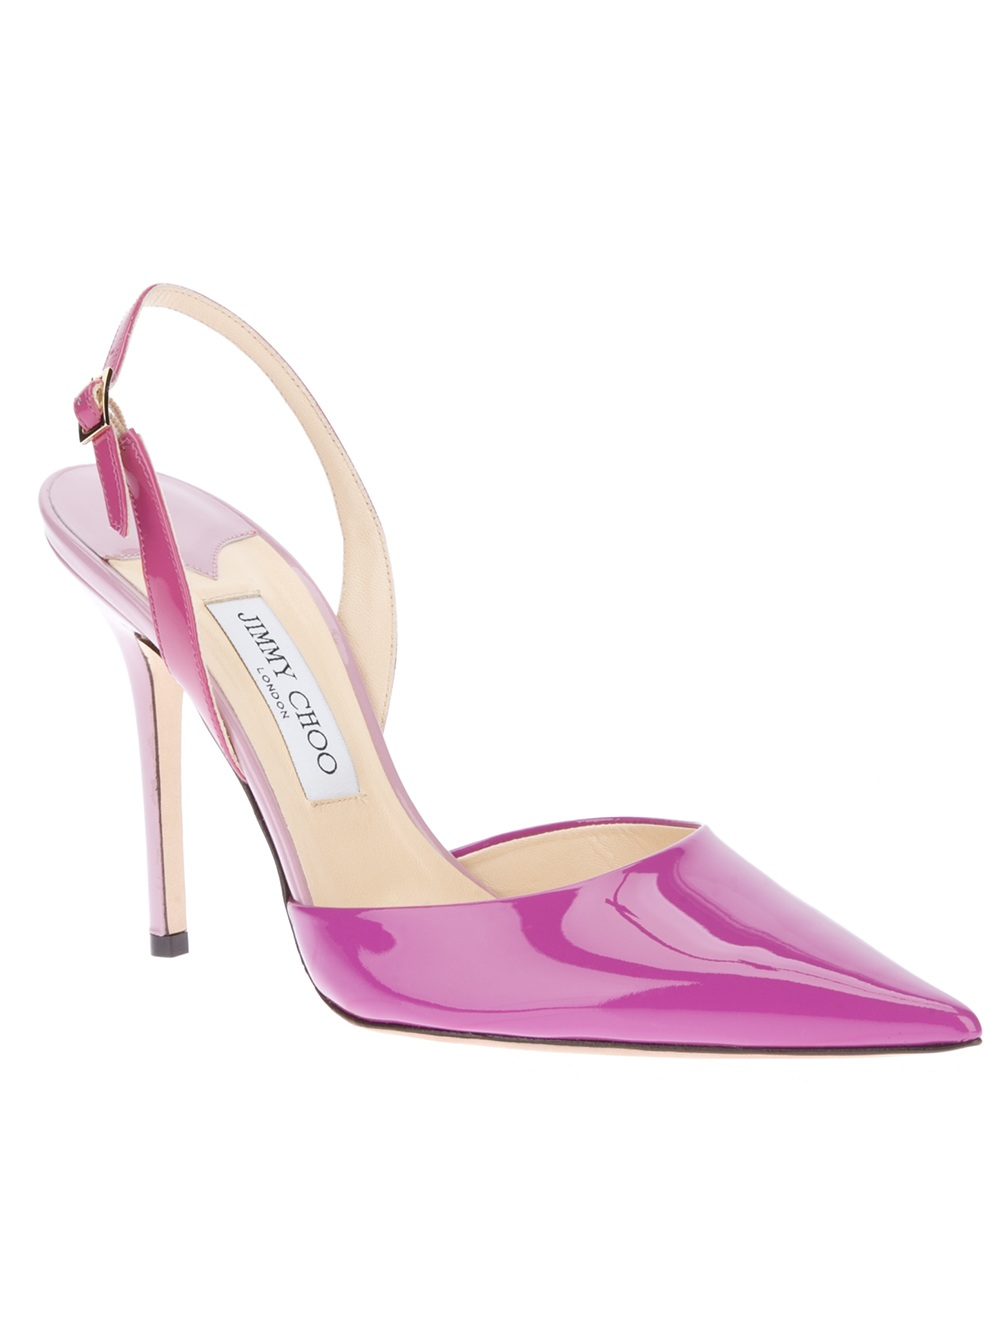 Lyst - Jimmy choo Volt Sling Back Pump in Purple